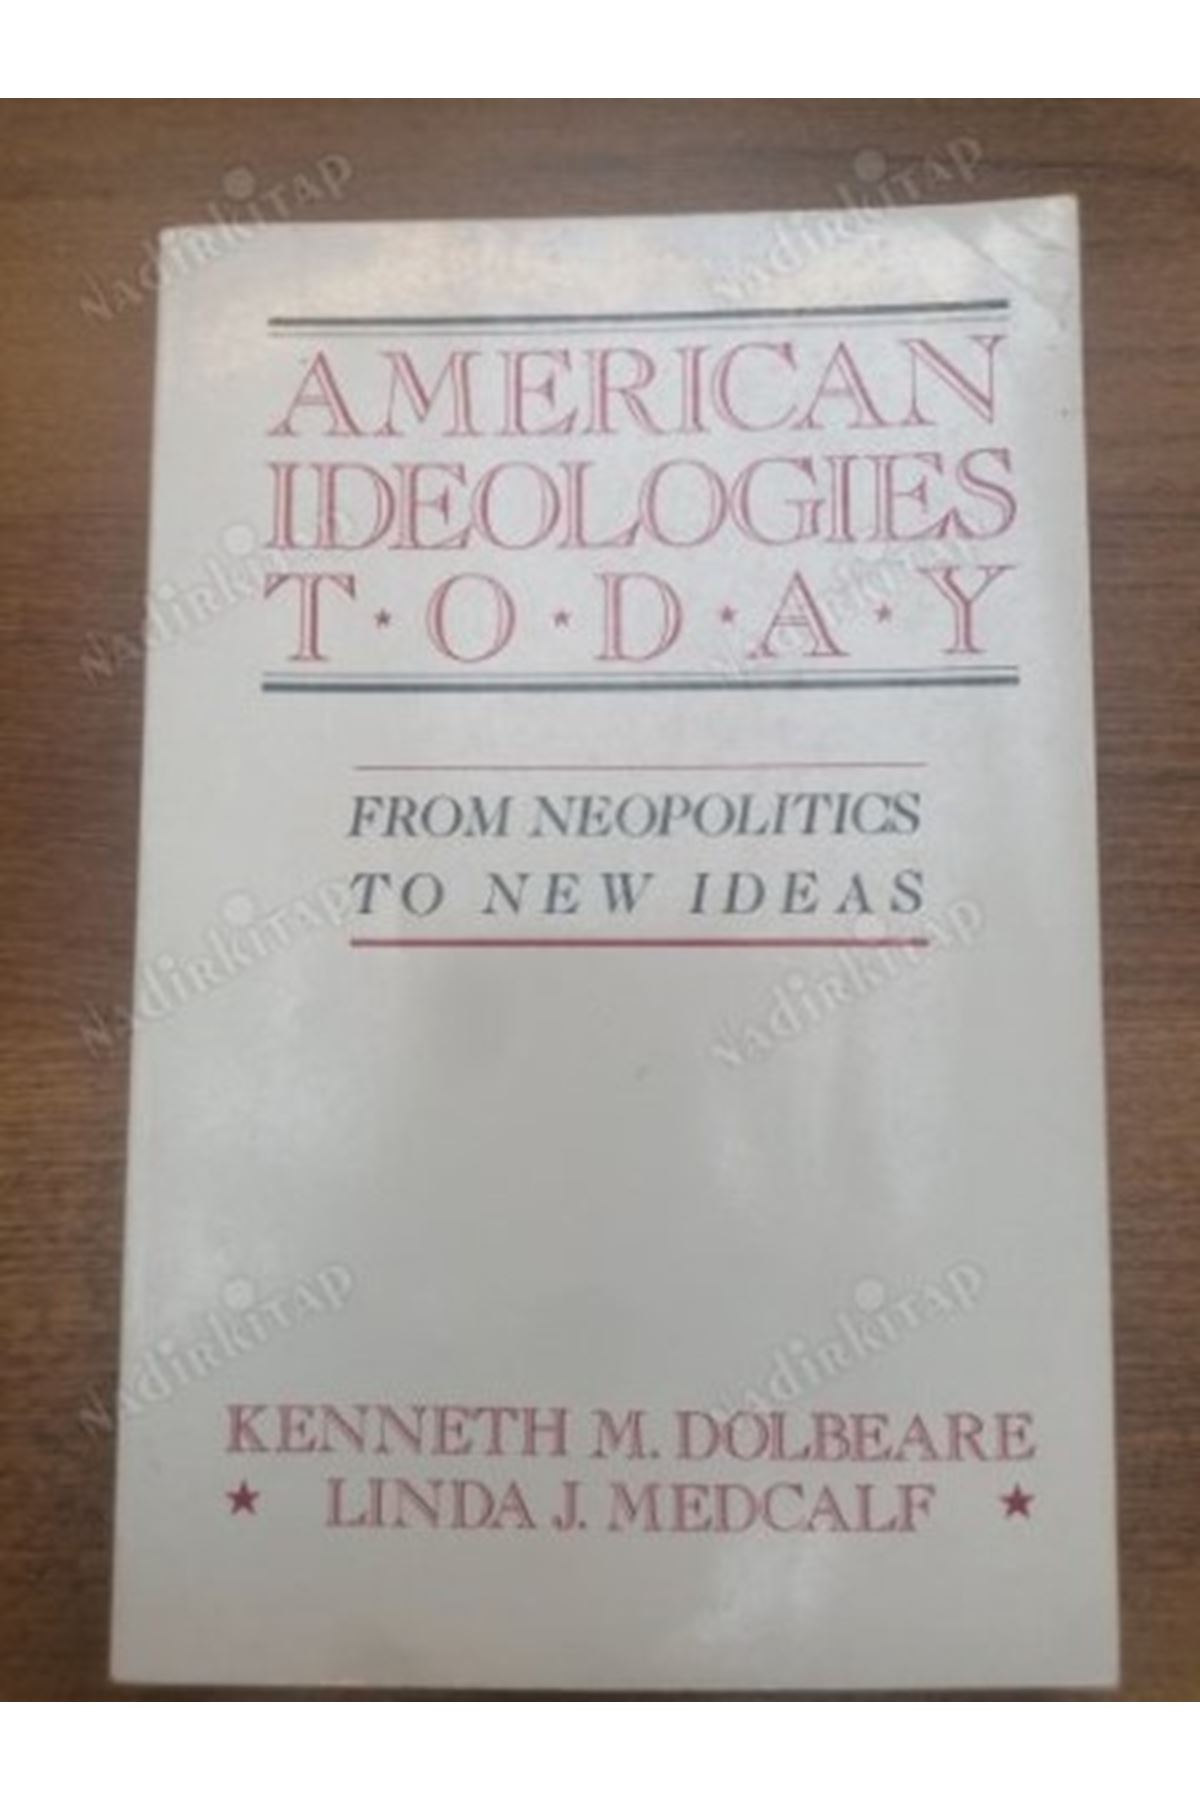 KENNETH M. DOLBEARE - AMERİCAN İDEOLOGİES TODAY